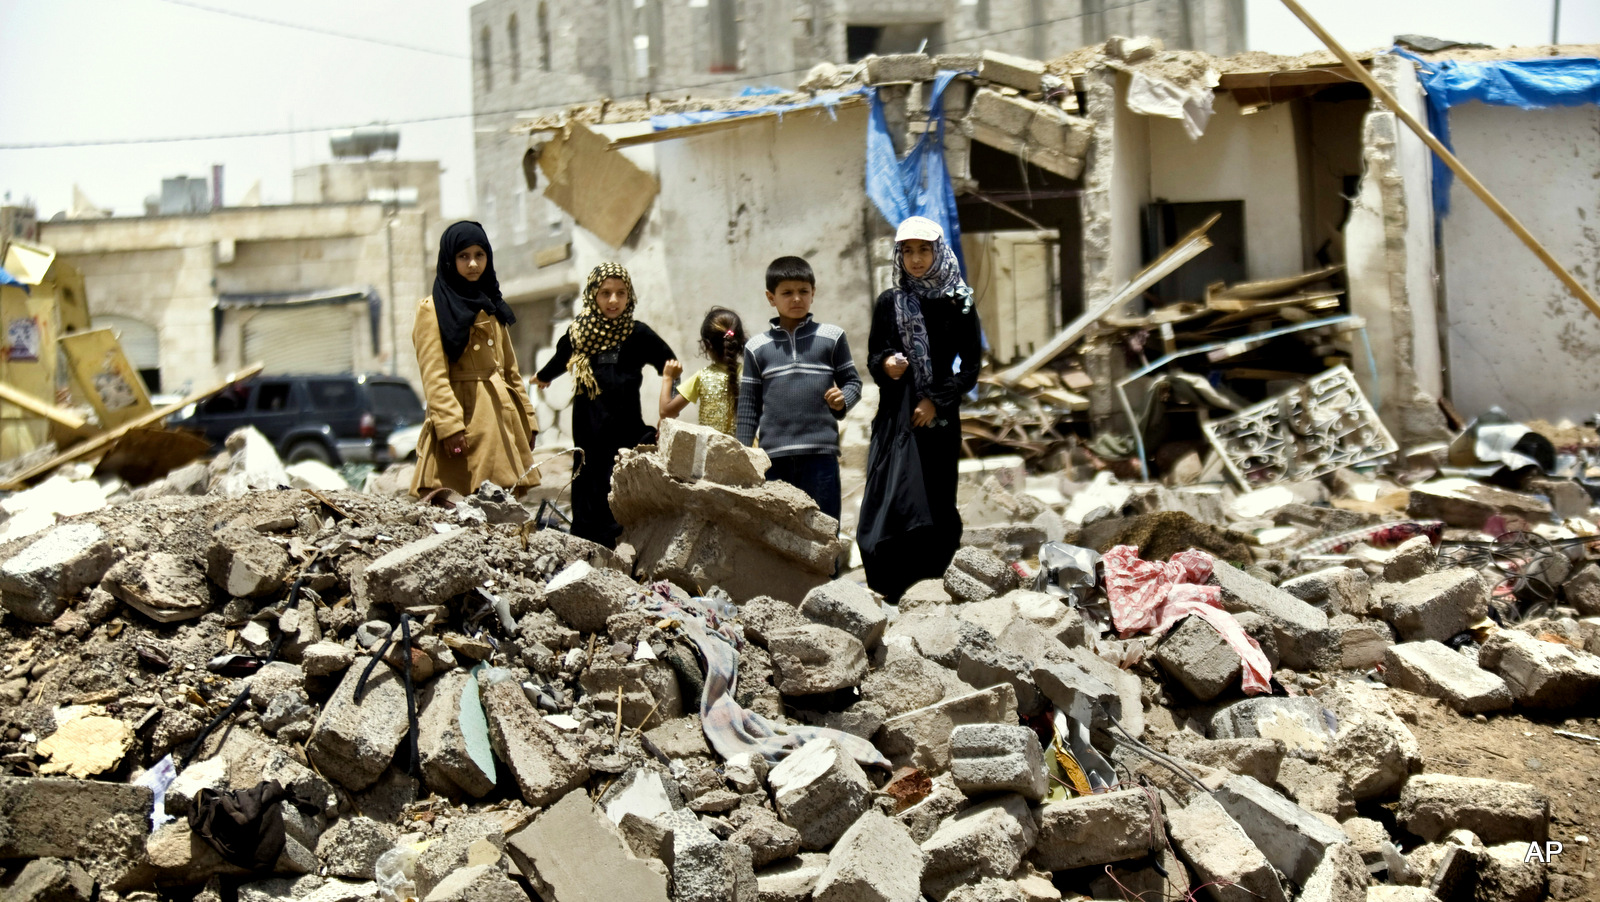 A boy and his sisters watch graffiti artists spray on a wall, commemorating the victims who were killed in Saudi-led coalition airstrikes in Sanaa, Yemen, Monday, May 18, 2015. Saudi-led airstrikes targeting Yemen's Shiite rebels resumed early on Monday in the southern port city of Aden after a five-day truce expired amid talks on the war-torn country's future that were boycotted by the rebels. (AP Photo/Hani Mohammed)